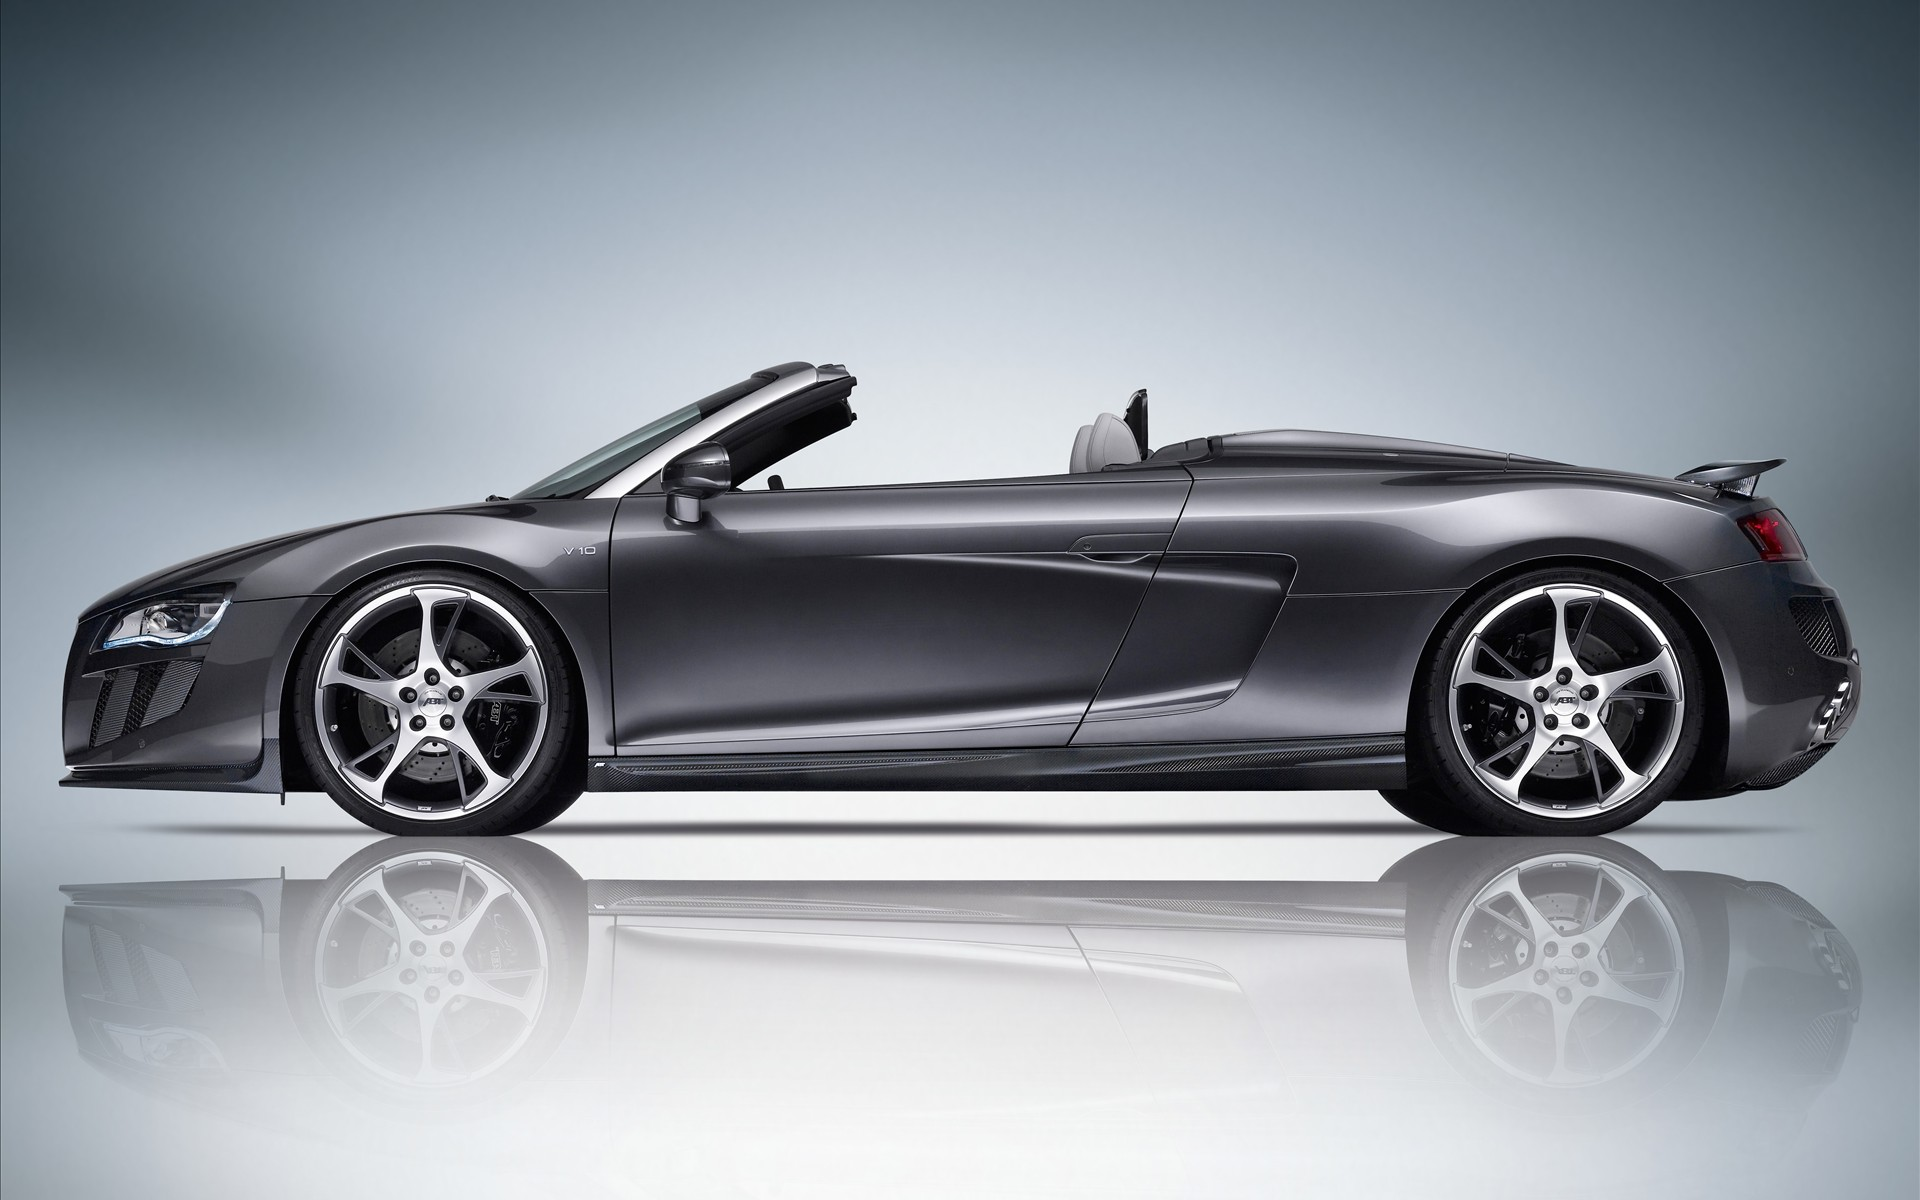 2010 Abt Audi R8 Spyder 2 Wallpapers Hd Wallpapers Id 8509